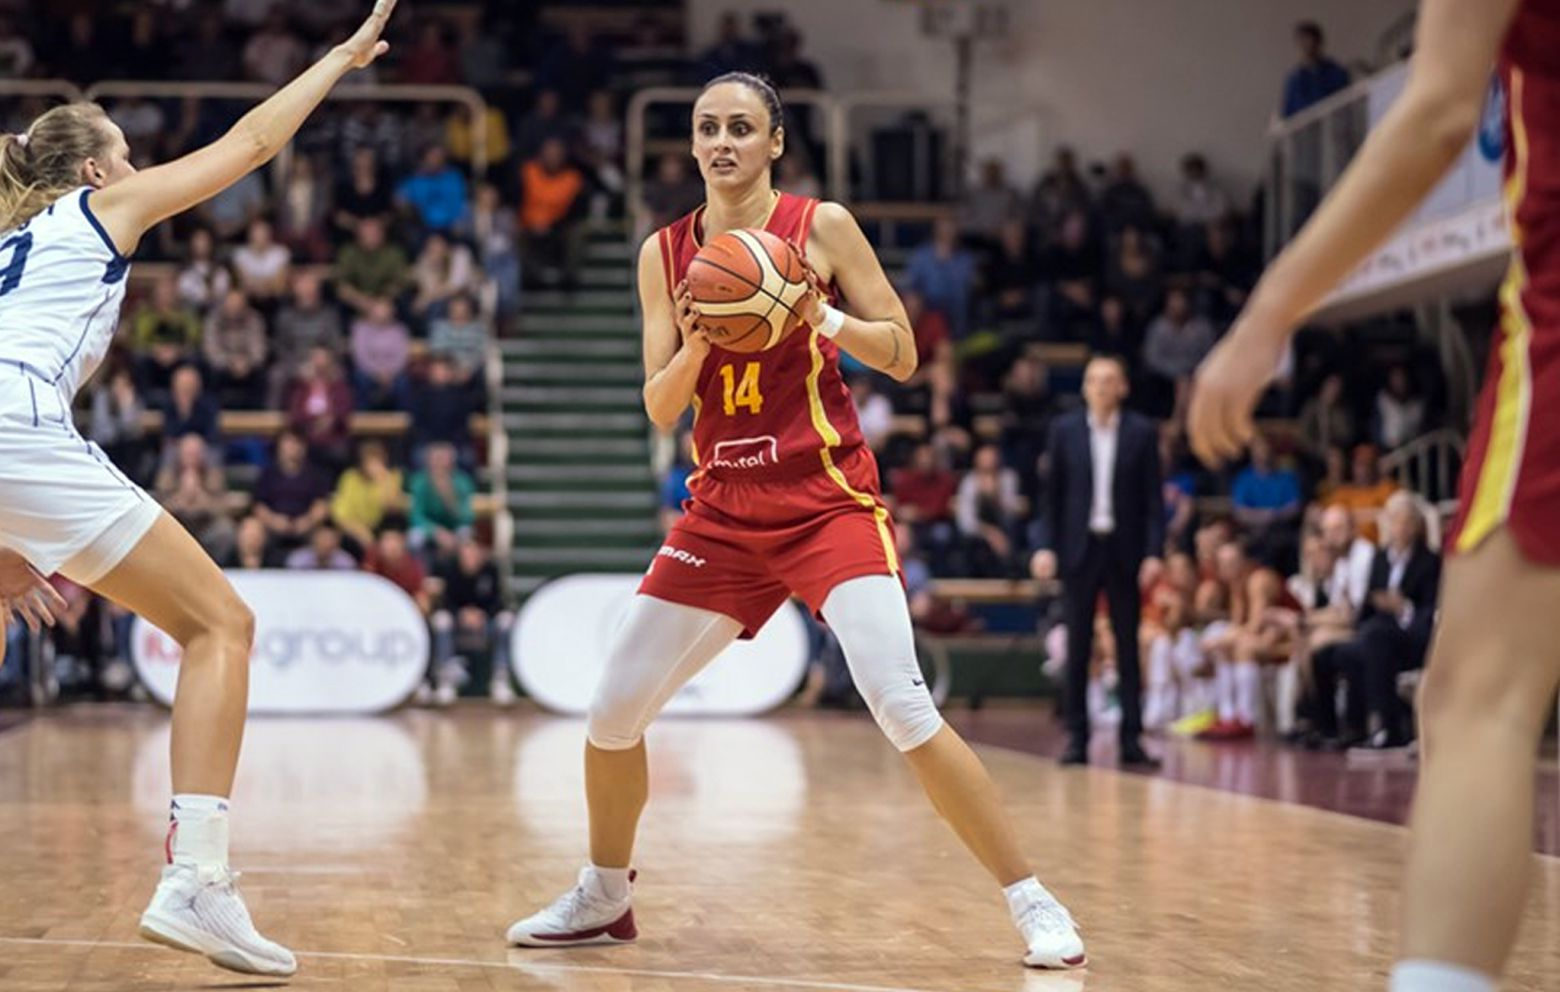 MILICA JOVANOVIC has signed in Sweden with Lulea